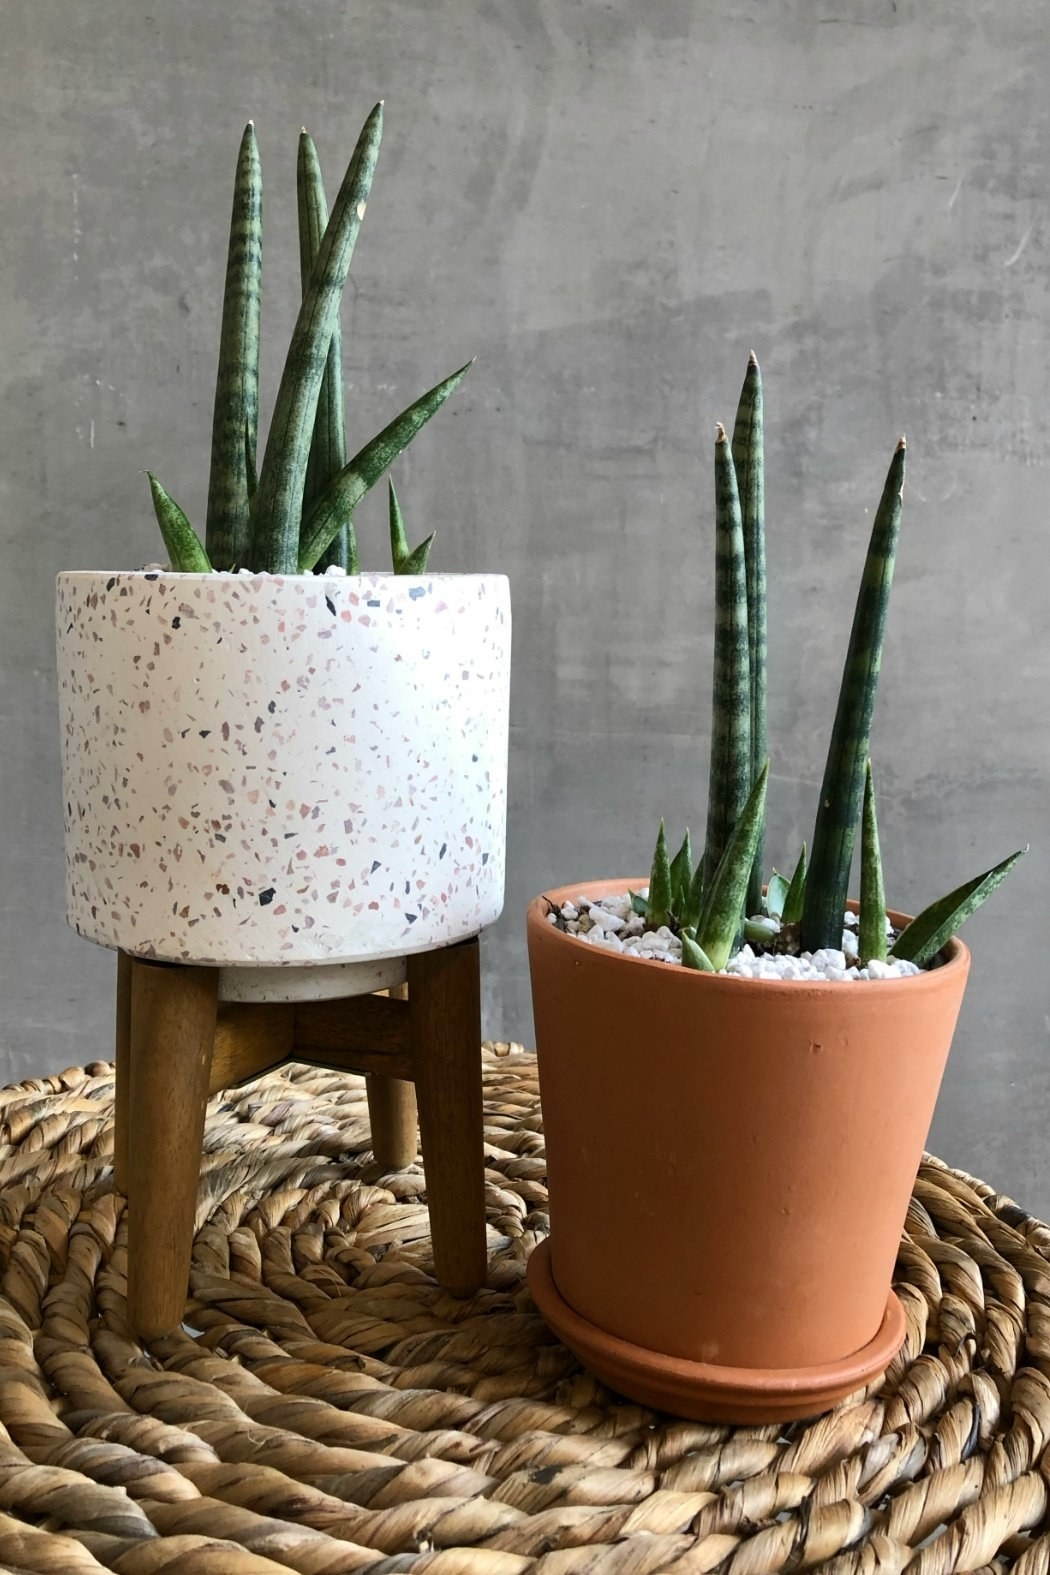 two snake plants, one in a terra-cotta pot and the other on a stand in a white speckled pot